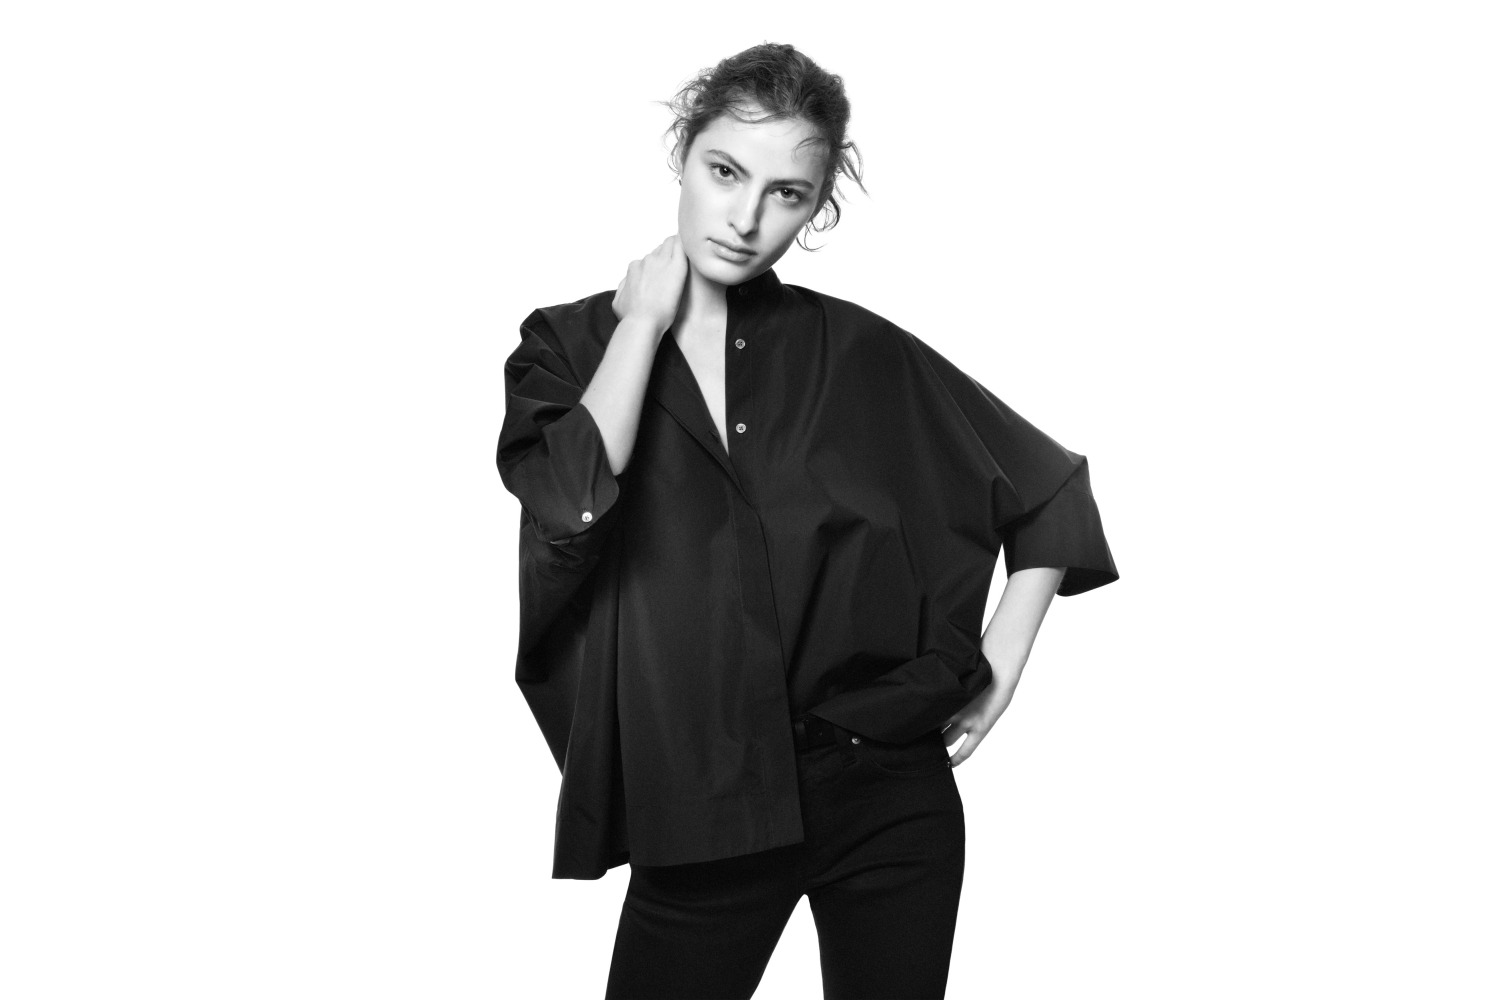 Felice for Uniqlo x Jil Sander